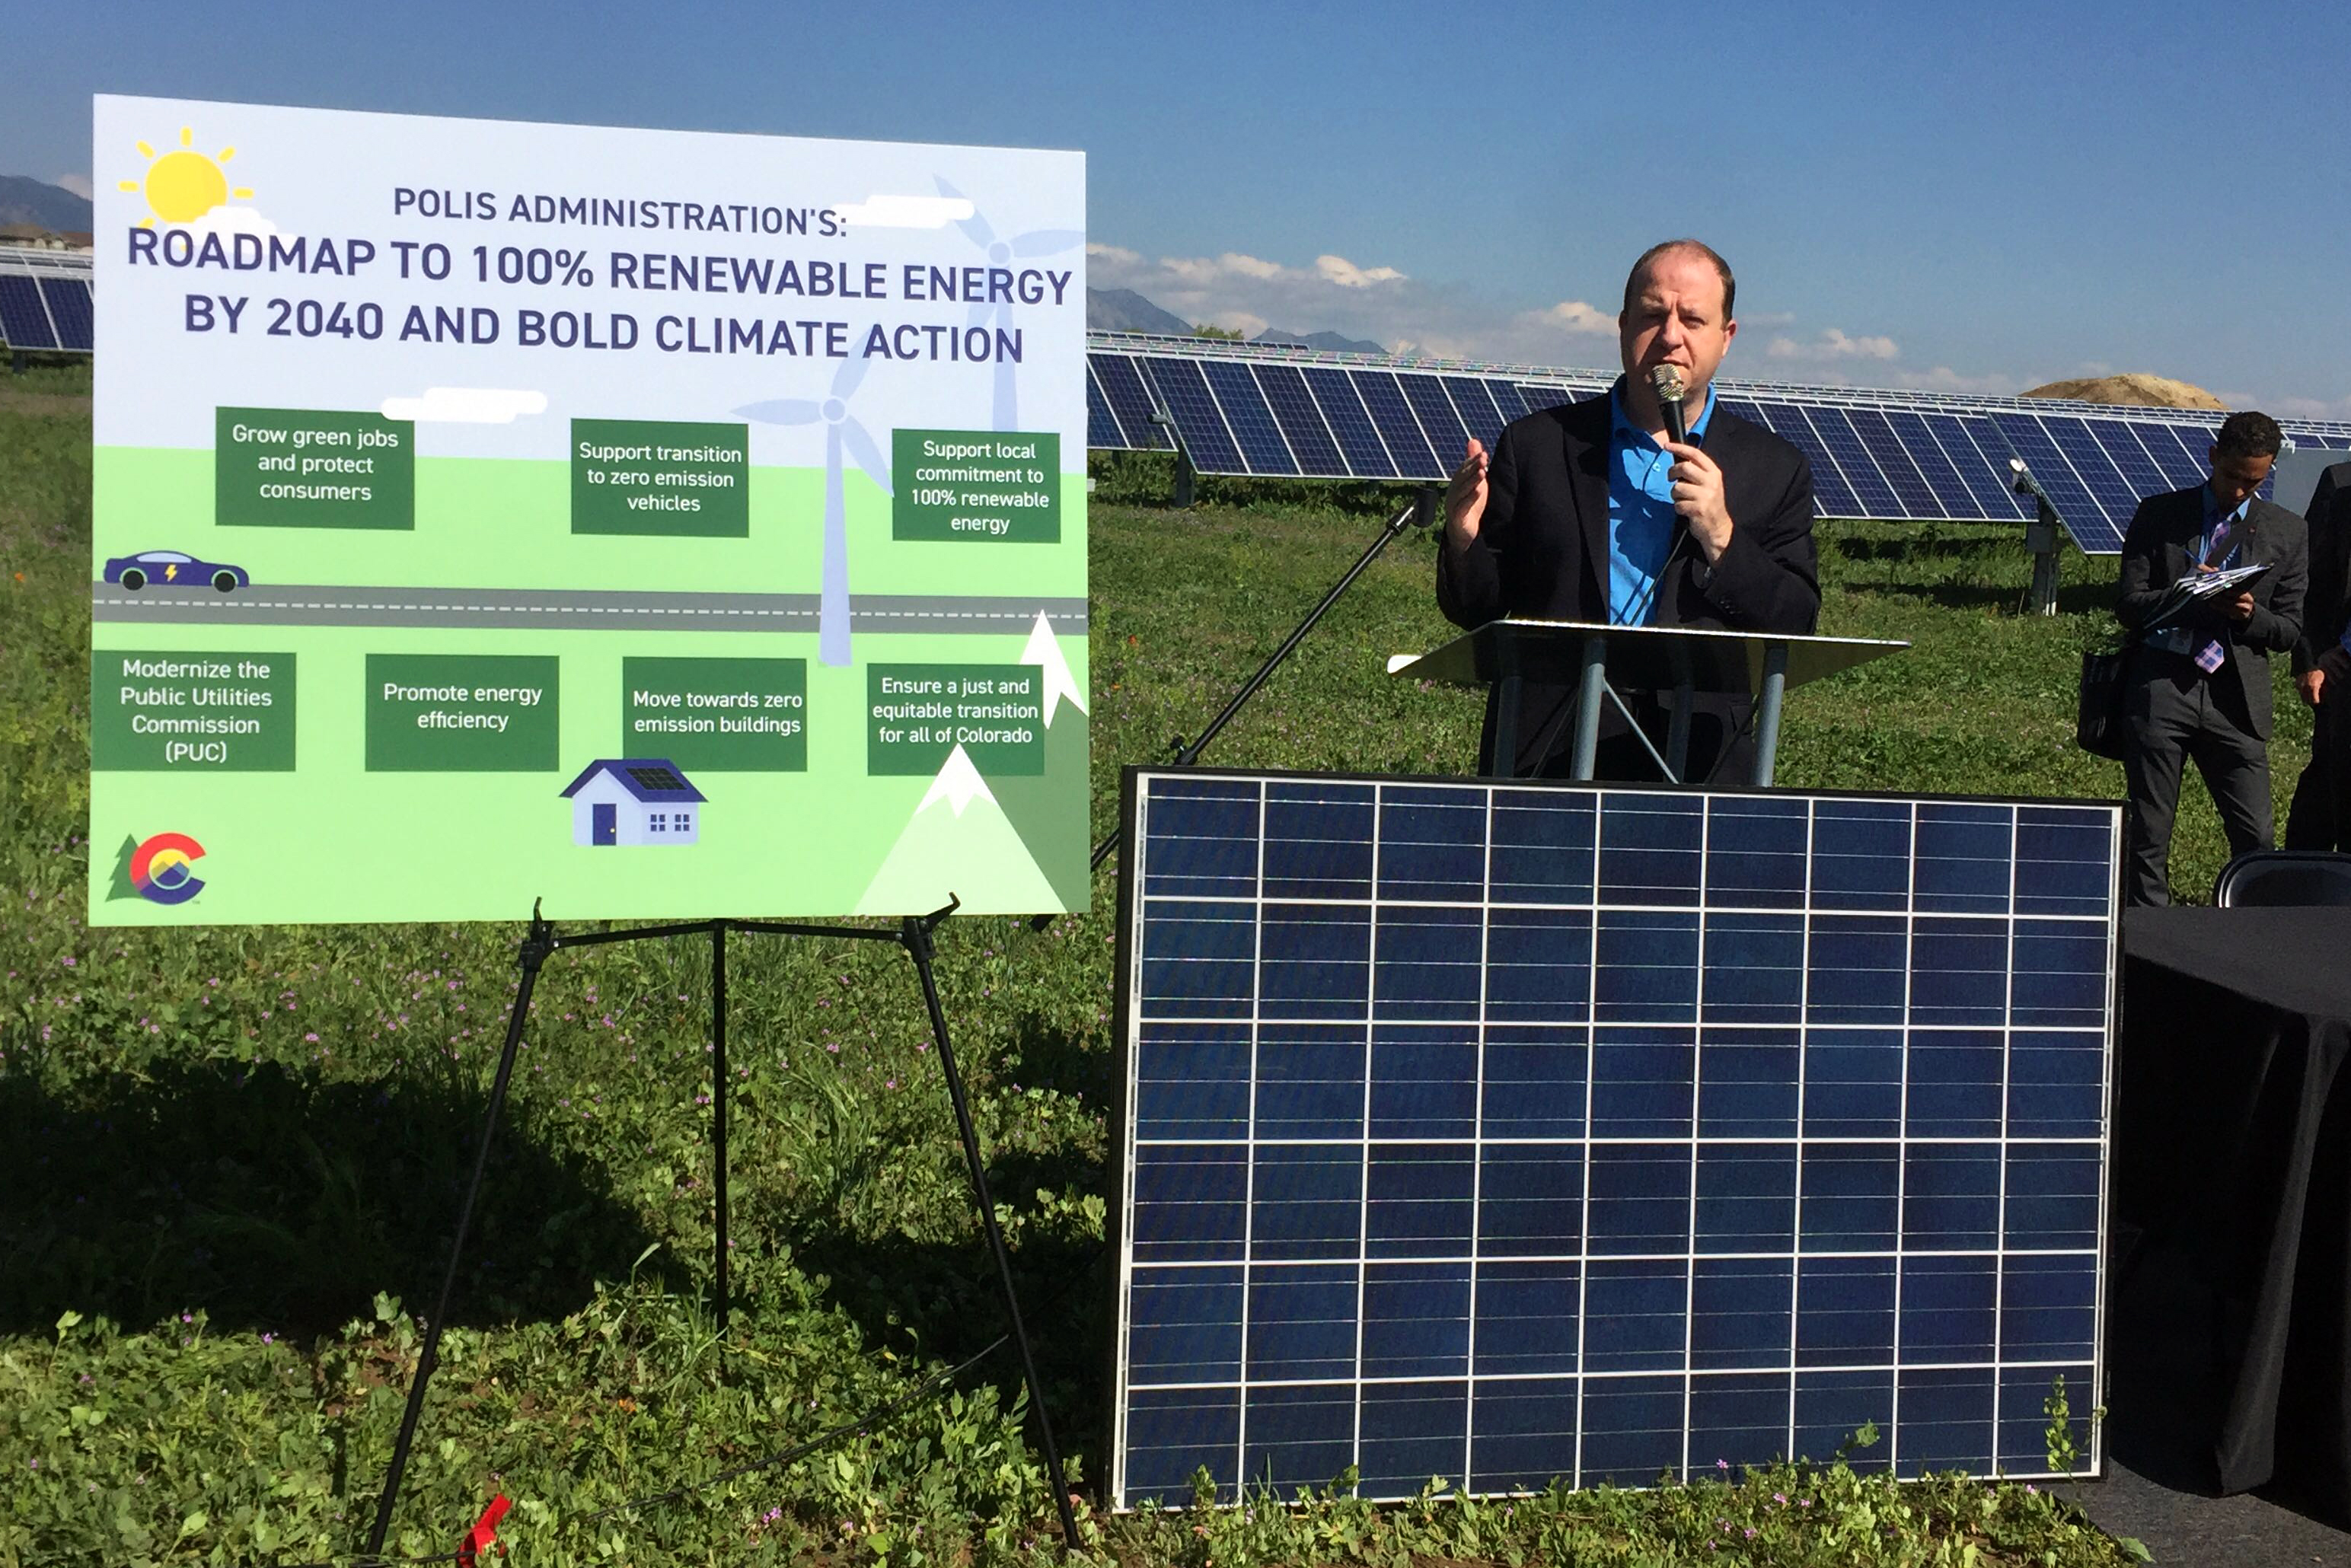 """<p>Colorado Governor Jared Polis unveils his """"roadmap"""" toget the state to 100 percent renewable energy by 2040. He signed seven new bills into law Thursday, May 30, 2019 at a solar energy """"garden."""" The bills are intended to limit the state's contributions to warming.</p>  <p></p>"""